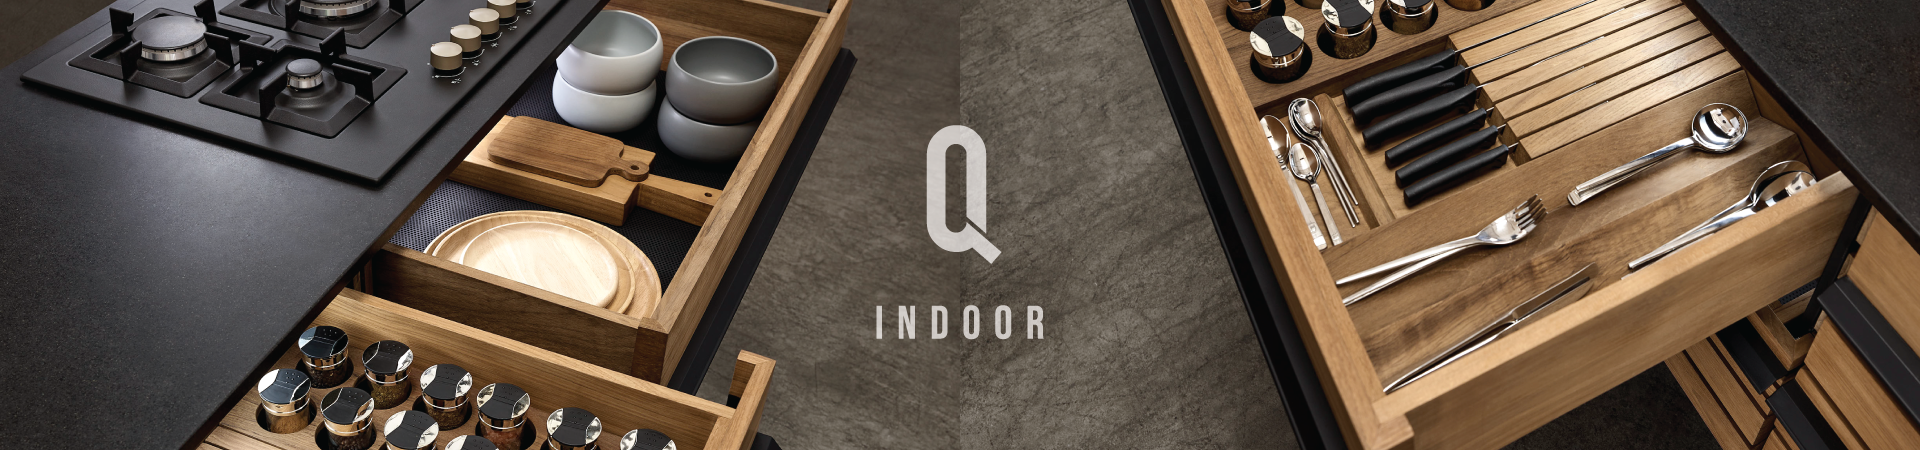 Q_website_productbanner_indoor_1920